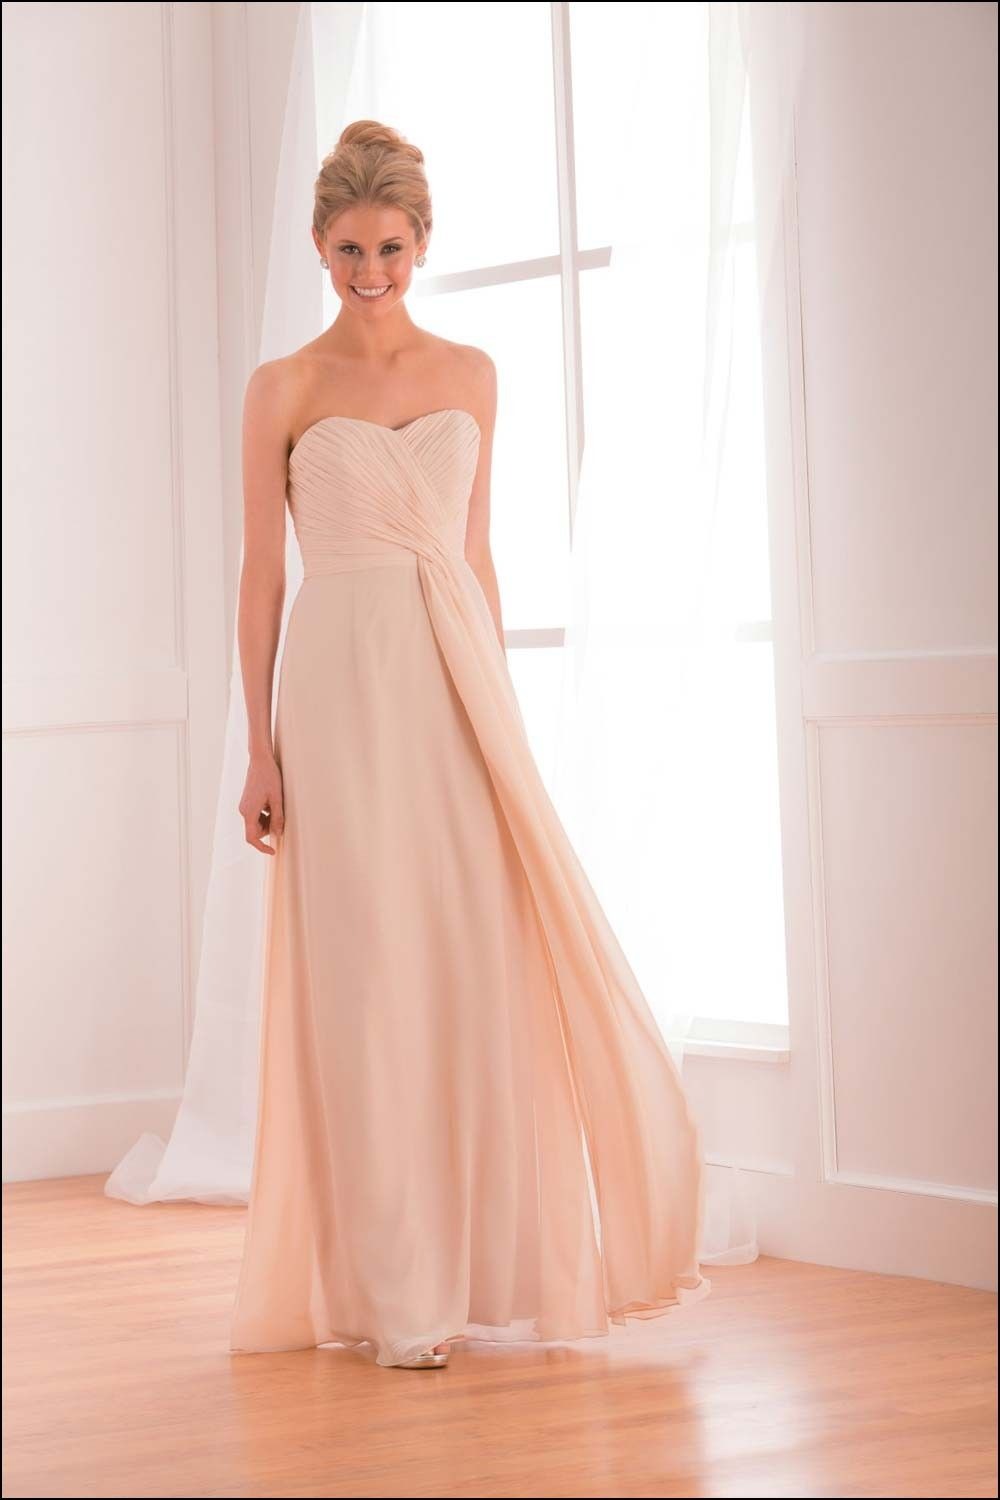 Soft peach bridesmaid dresses dresses and gowns ideas soft peach bridesmaid dresses ombrellifo Image collections